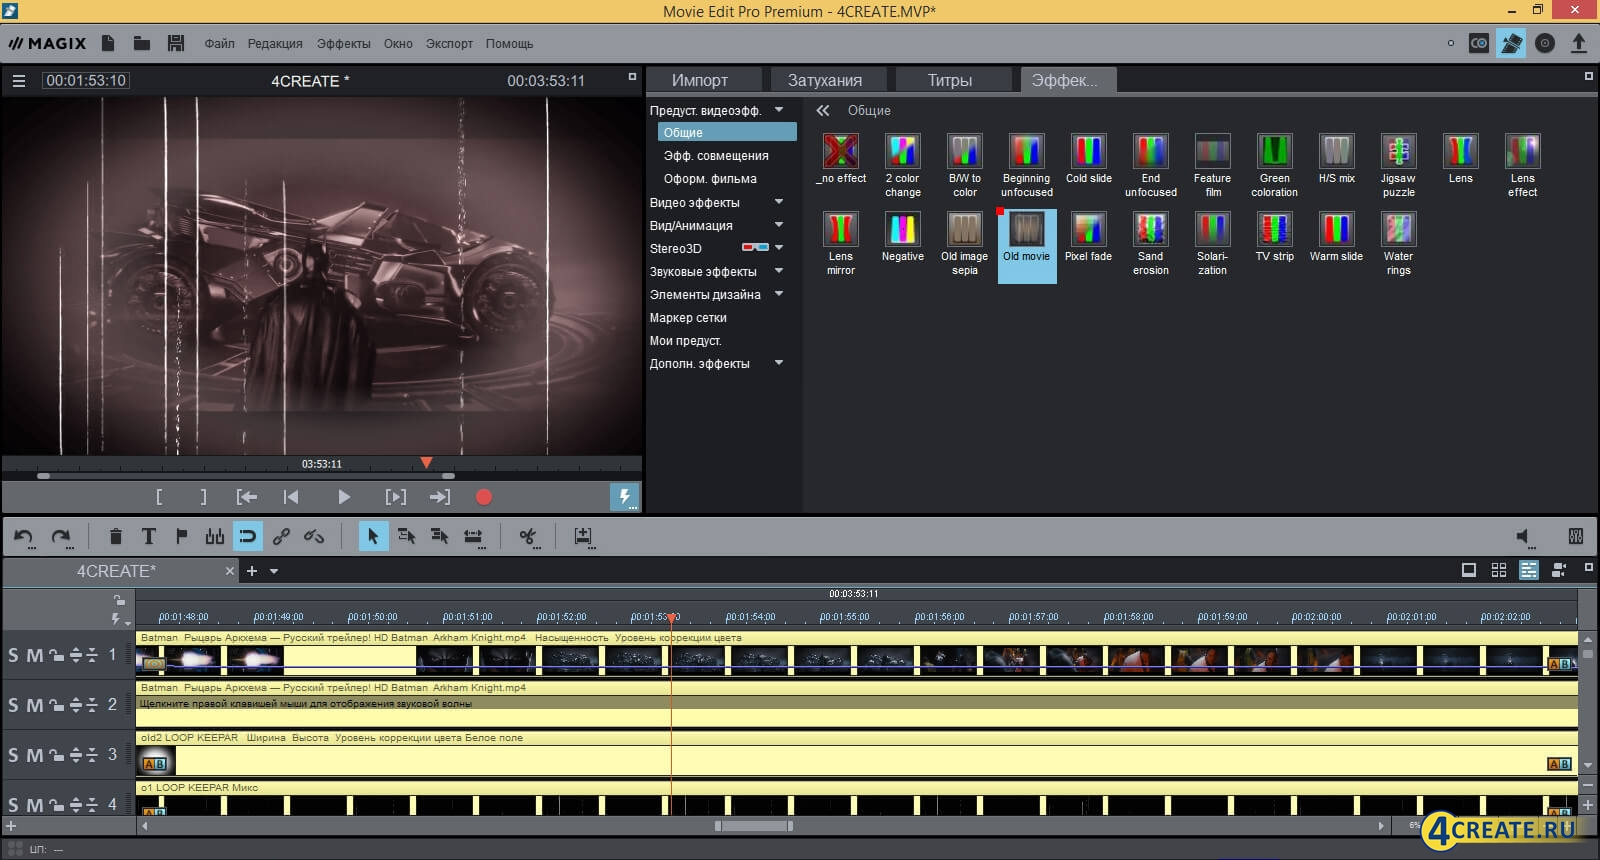 MAGIX Movie Edit Pro 2017 (Скриншот 3)